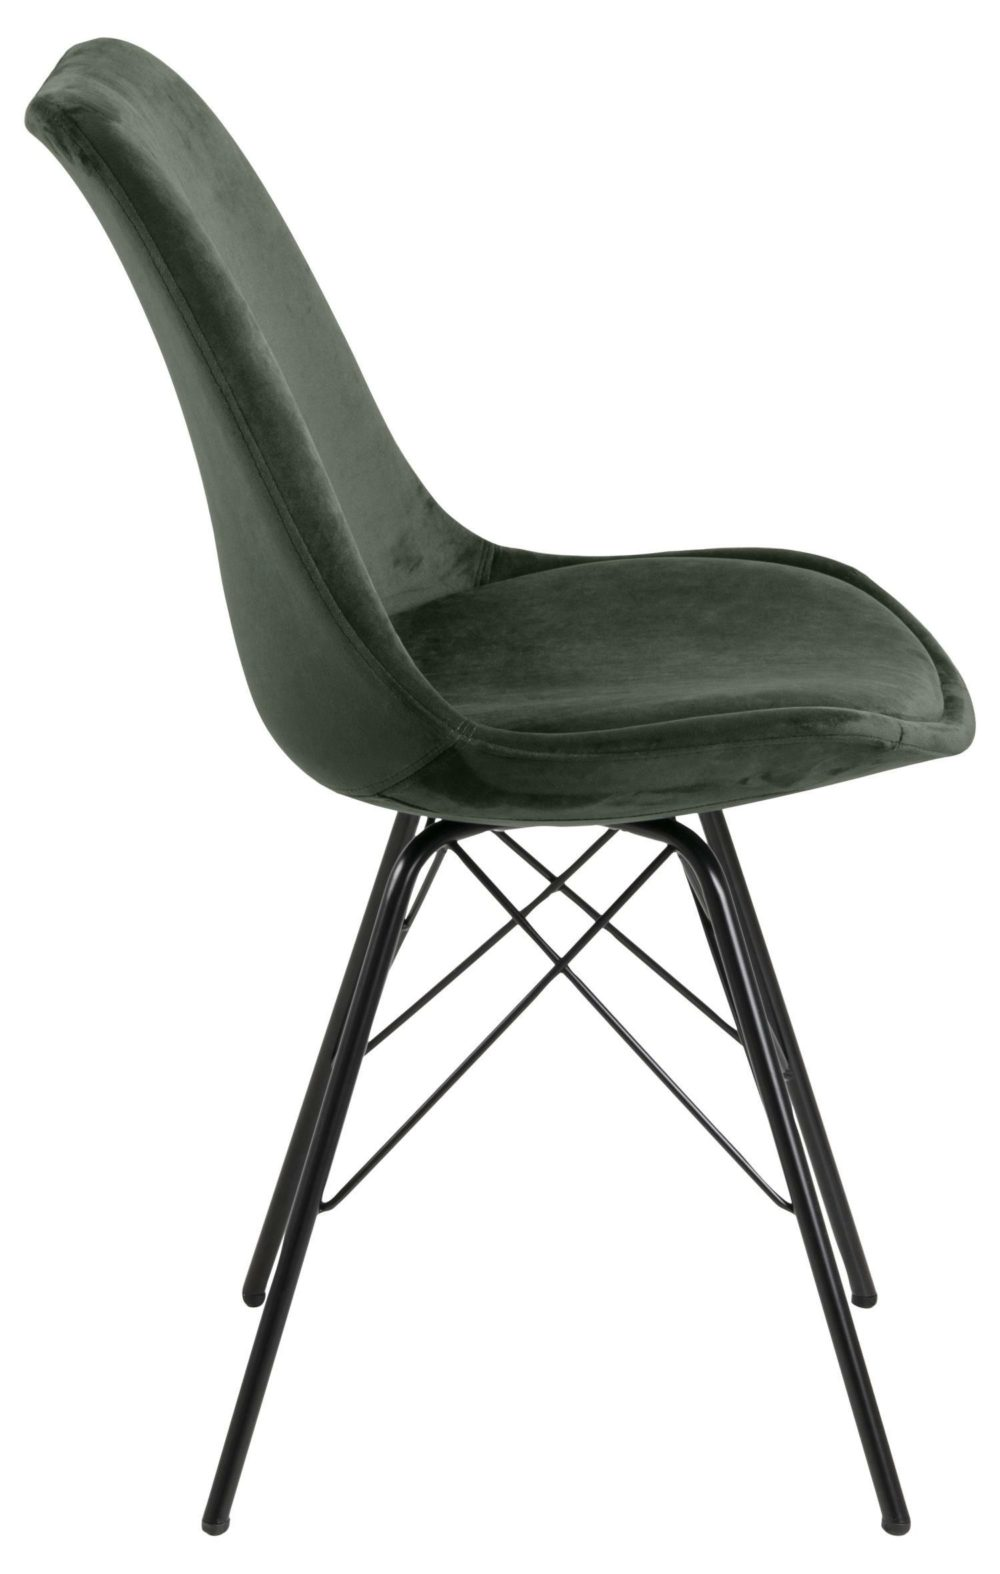 Out000536_Eris-dining-chair-forest-green-1_Fotor